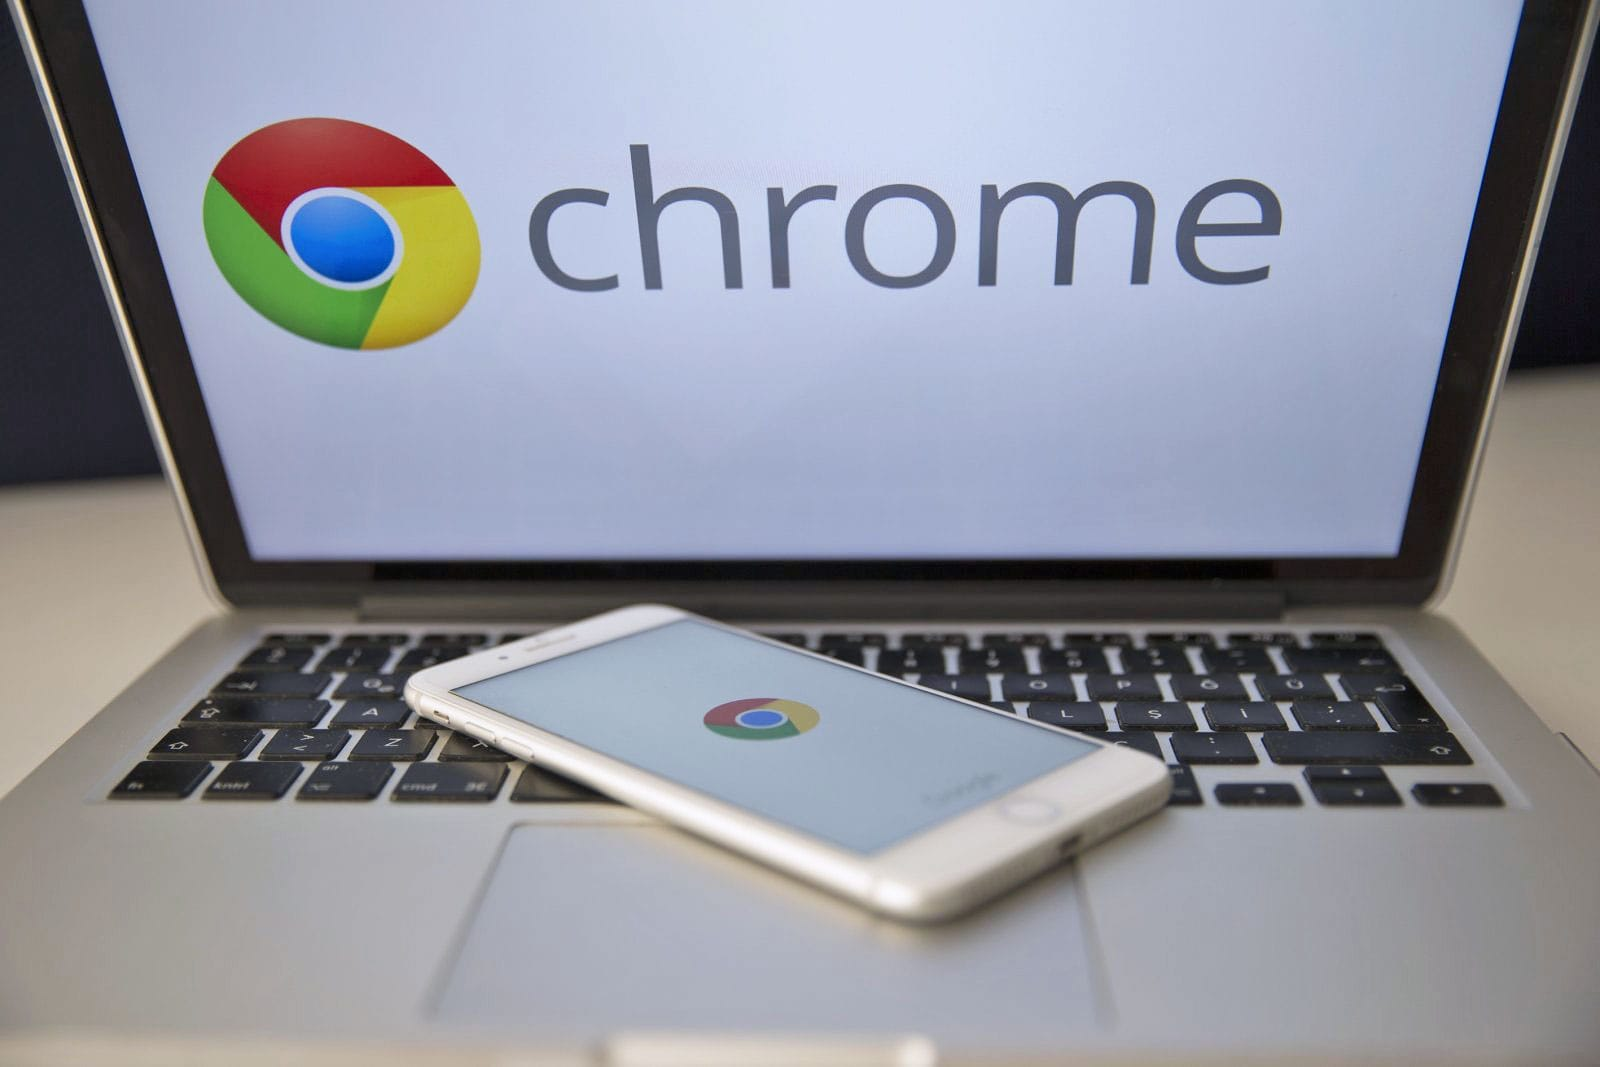 Chrome will soon support your keyboard's play and pause buttons